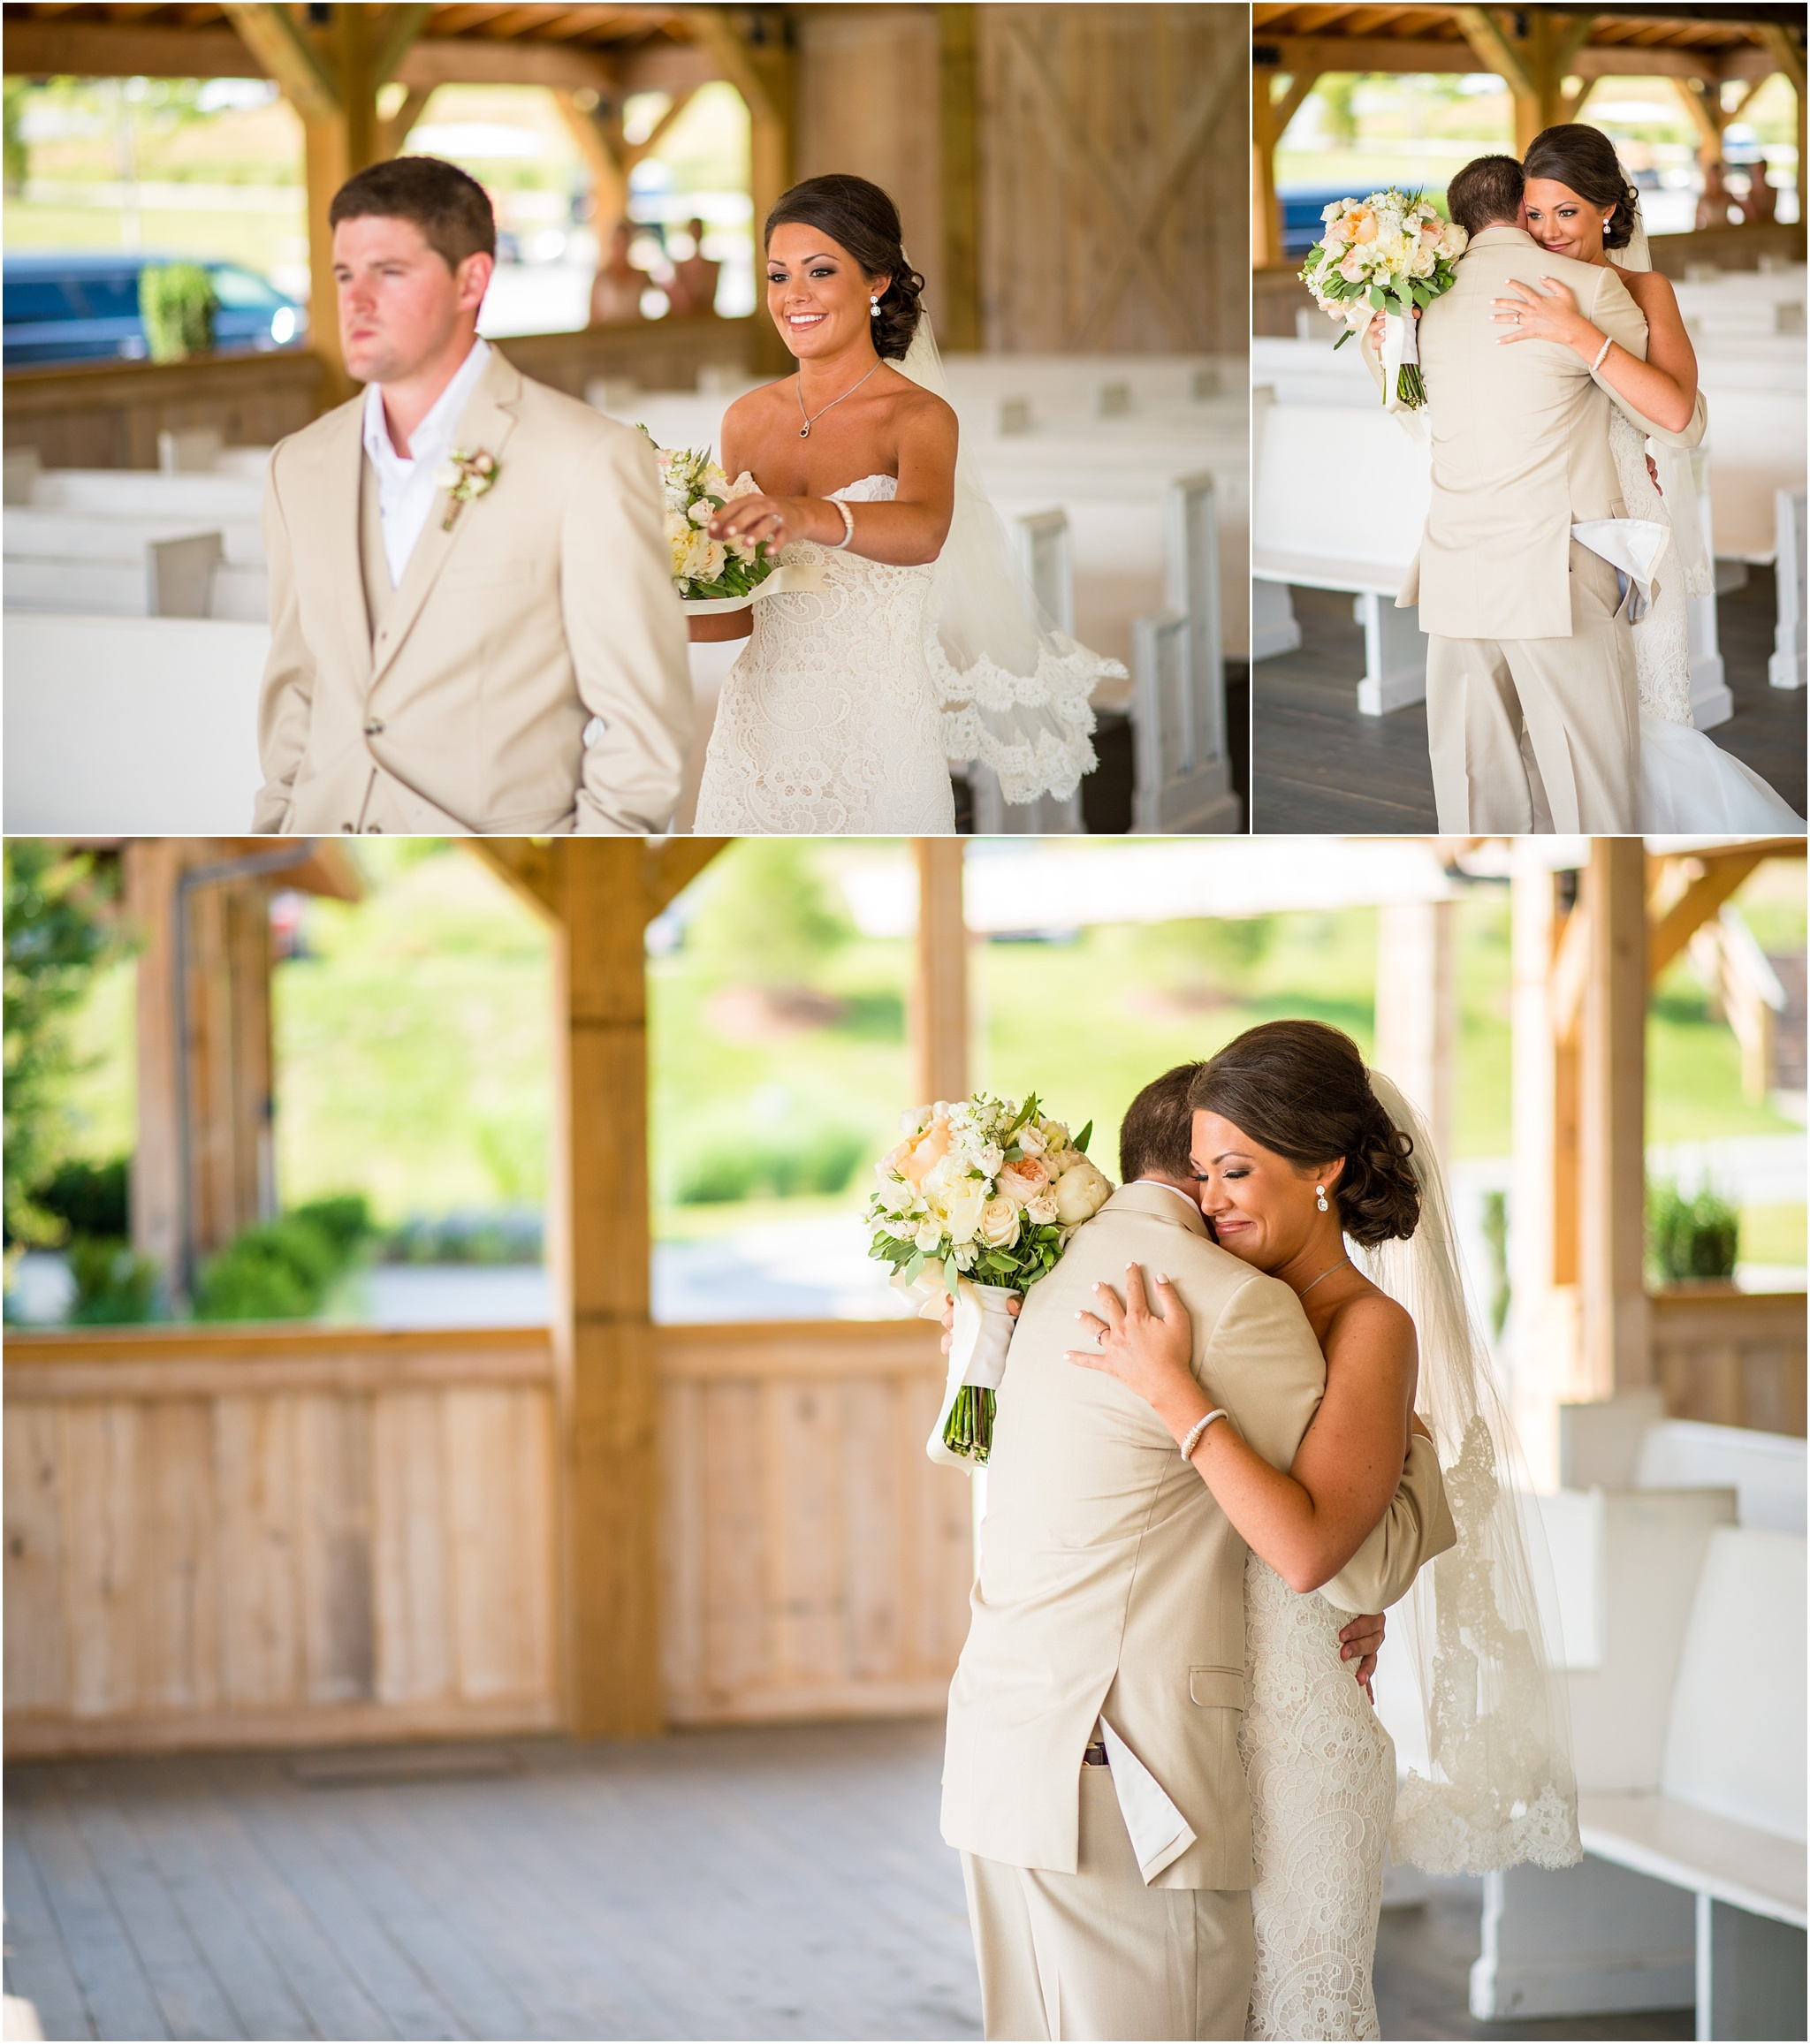 Greg Smit Photography Nashville wedding photographer Mint Springs Farm 7